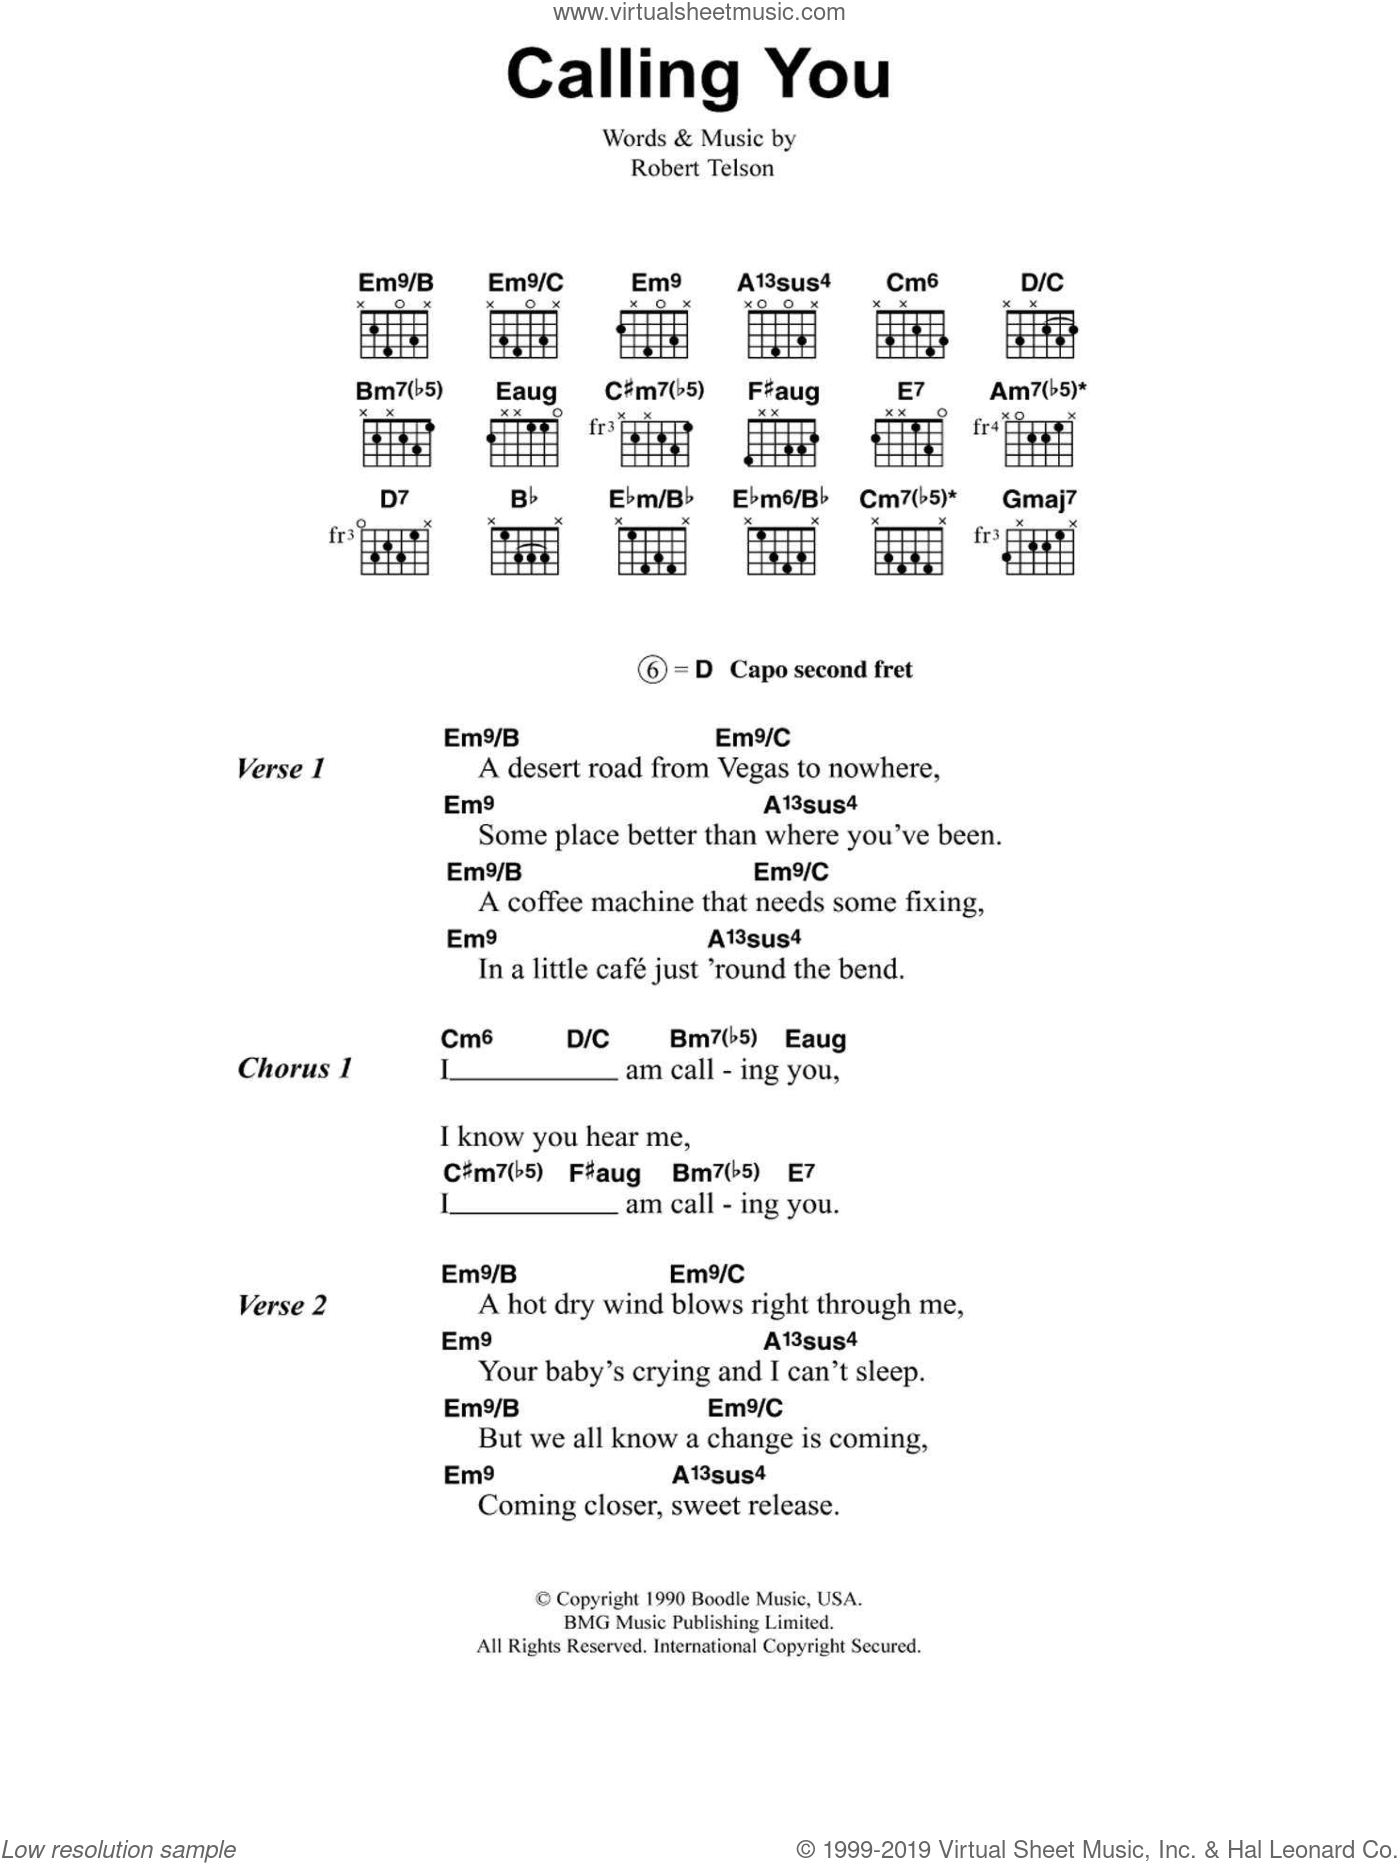 Calling You sheet music for guitar (chords) by Robert Telson